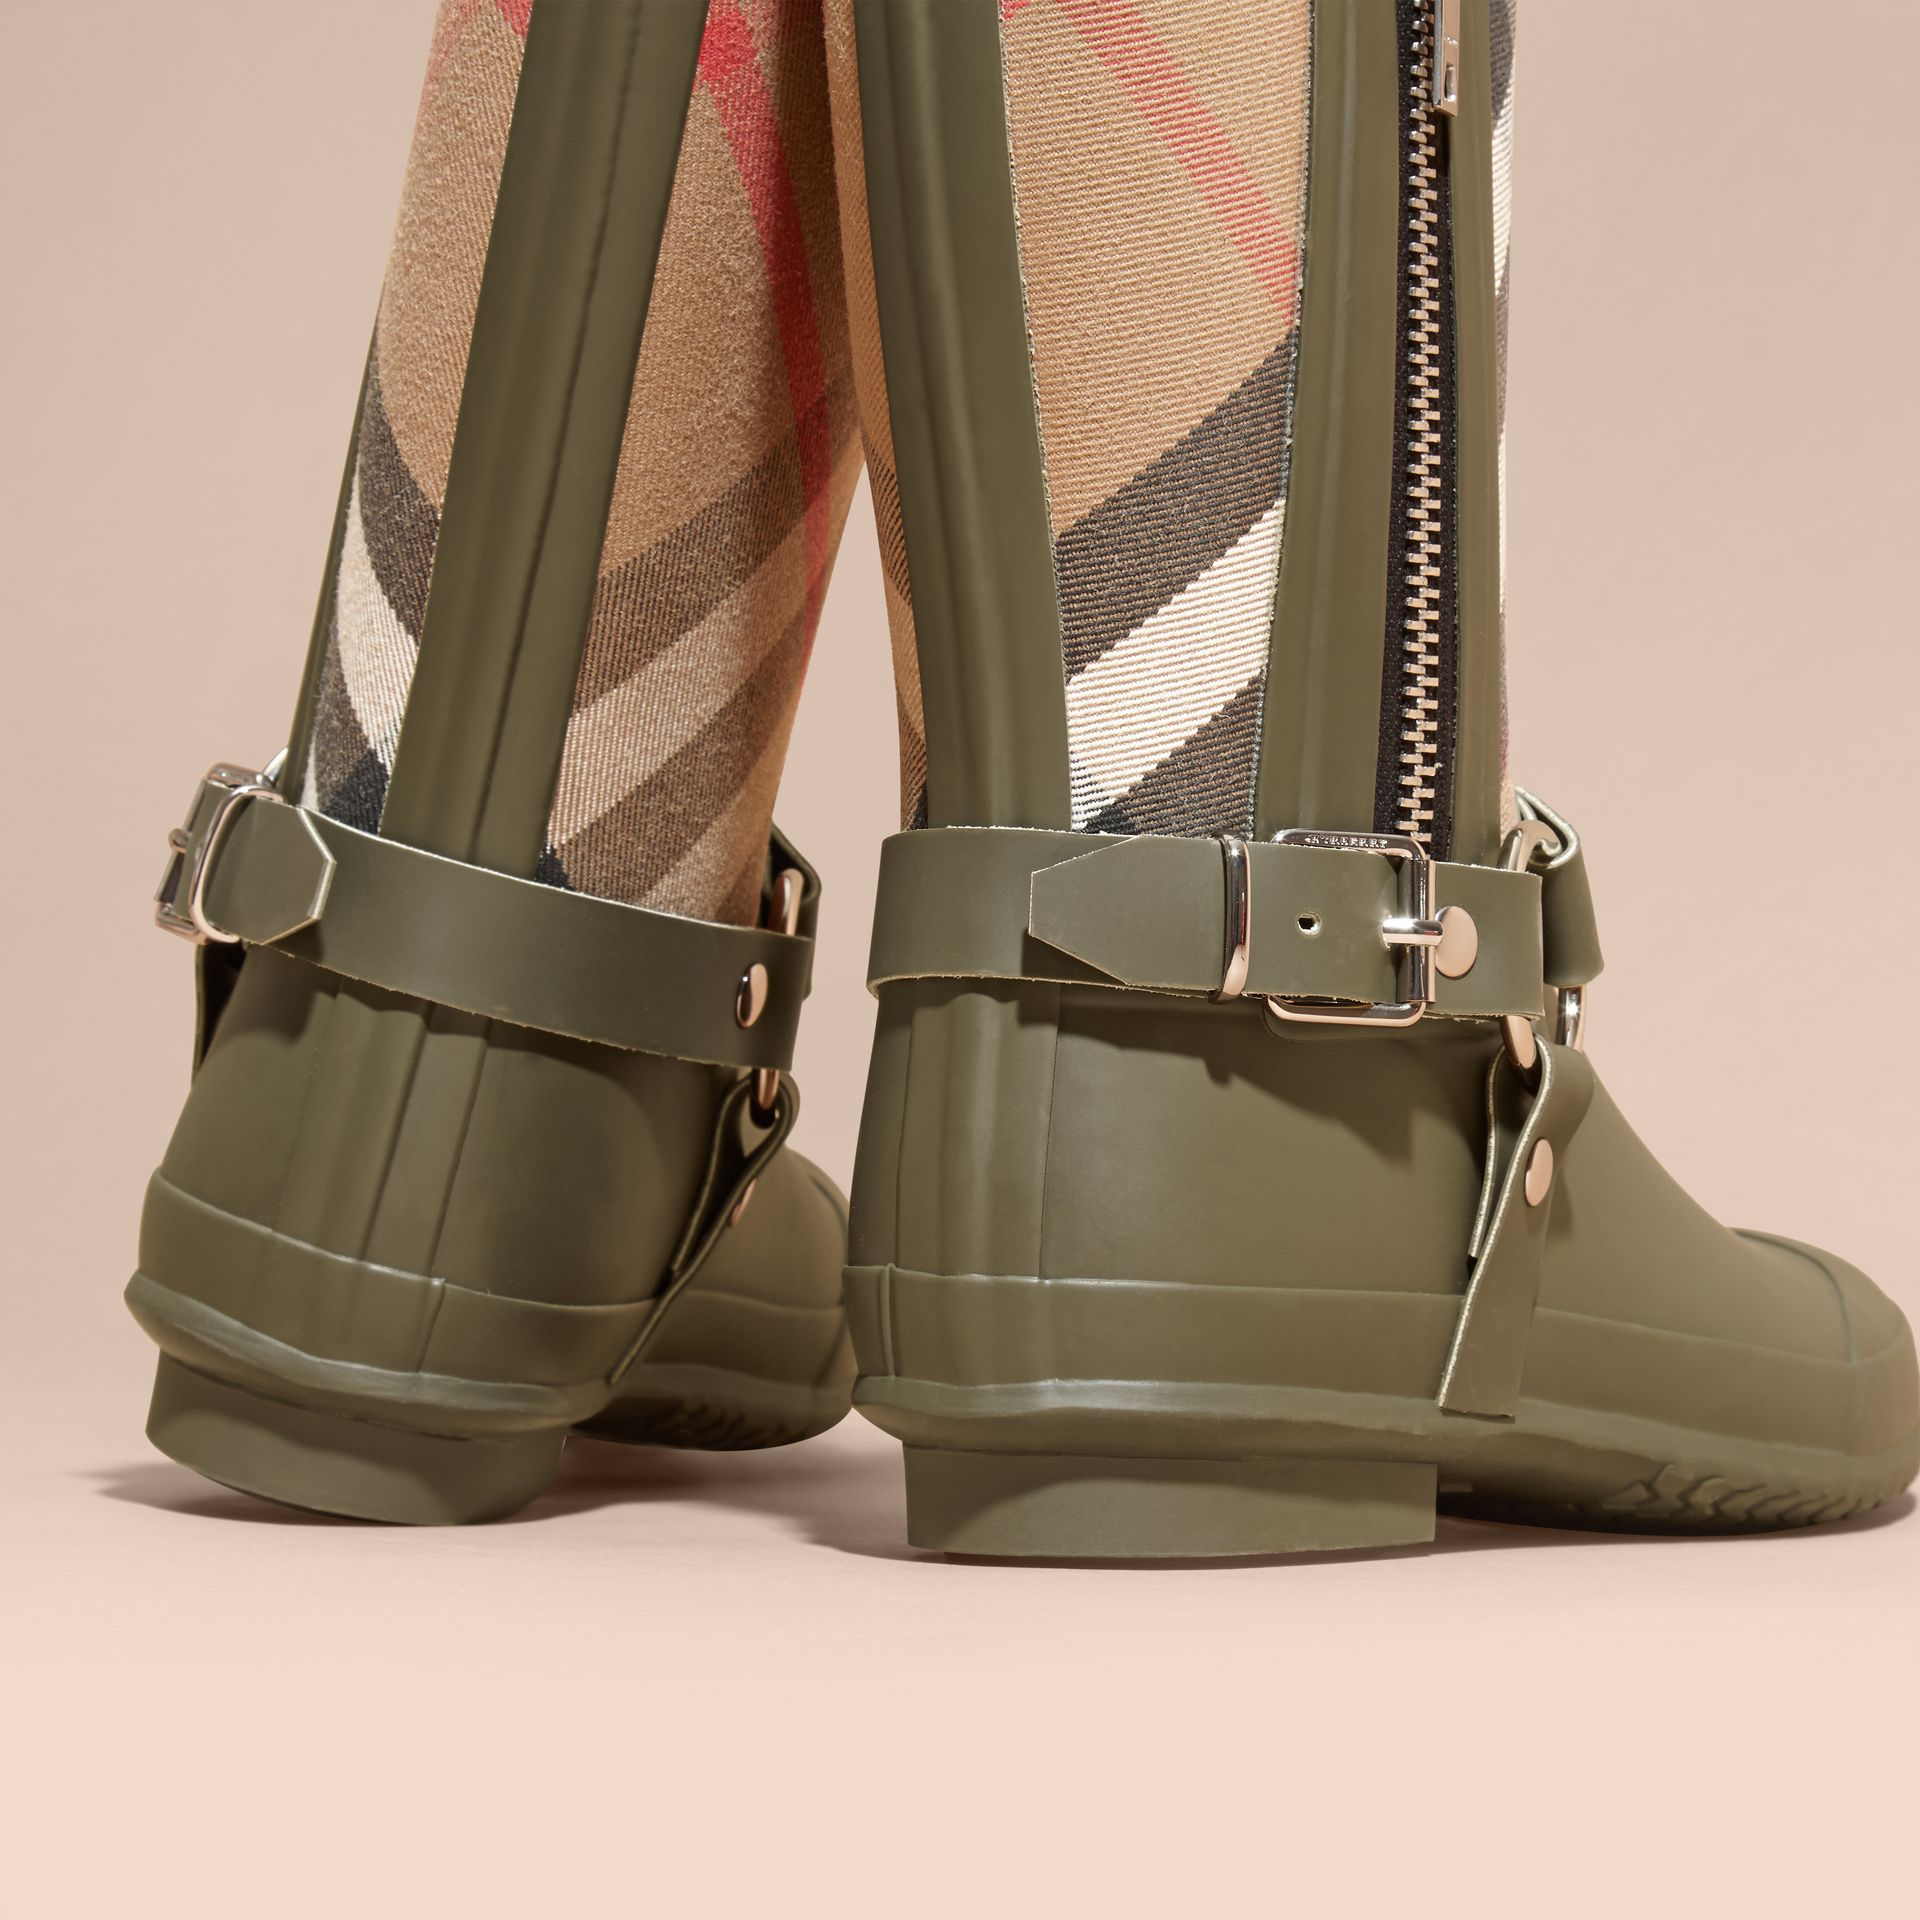 Buckle and Strap Detail Check Rain Boots House Check/military Green - gallery image 4